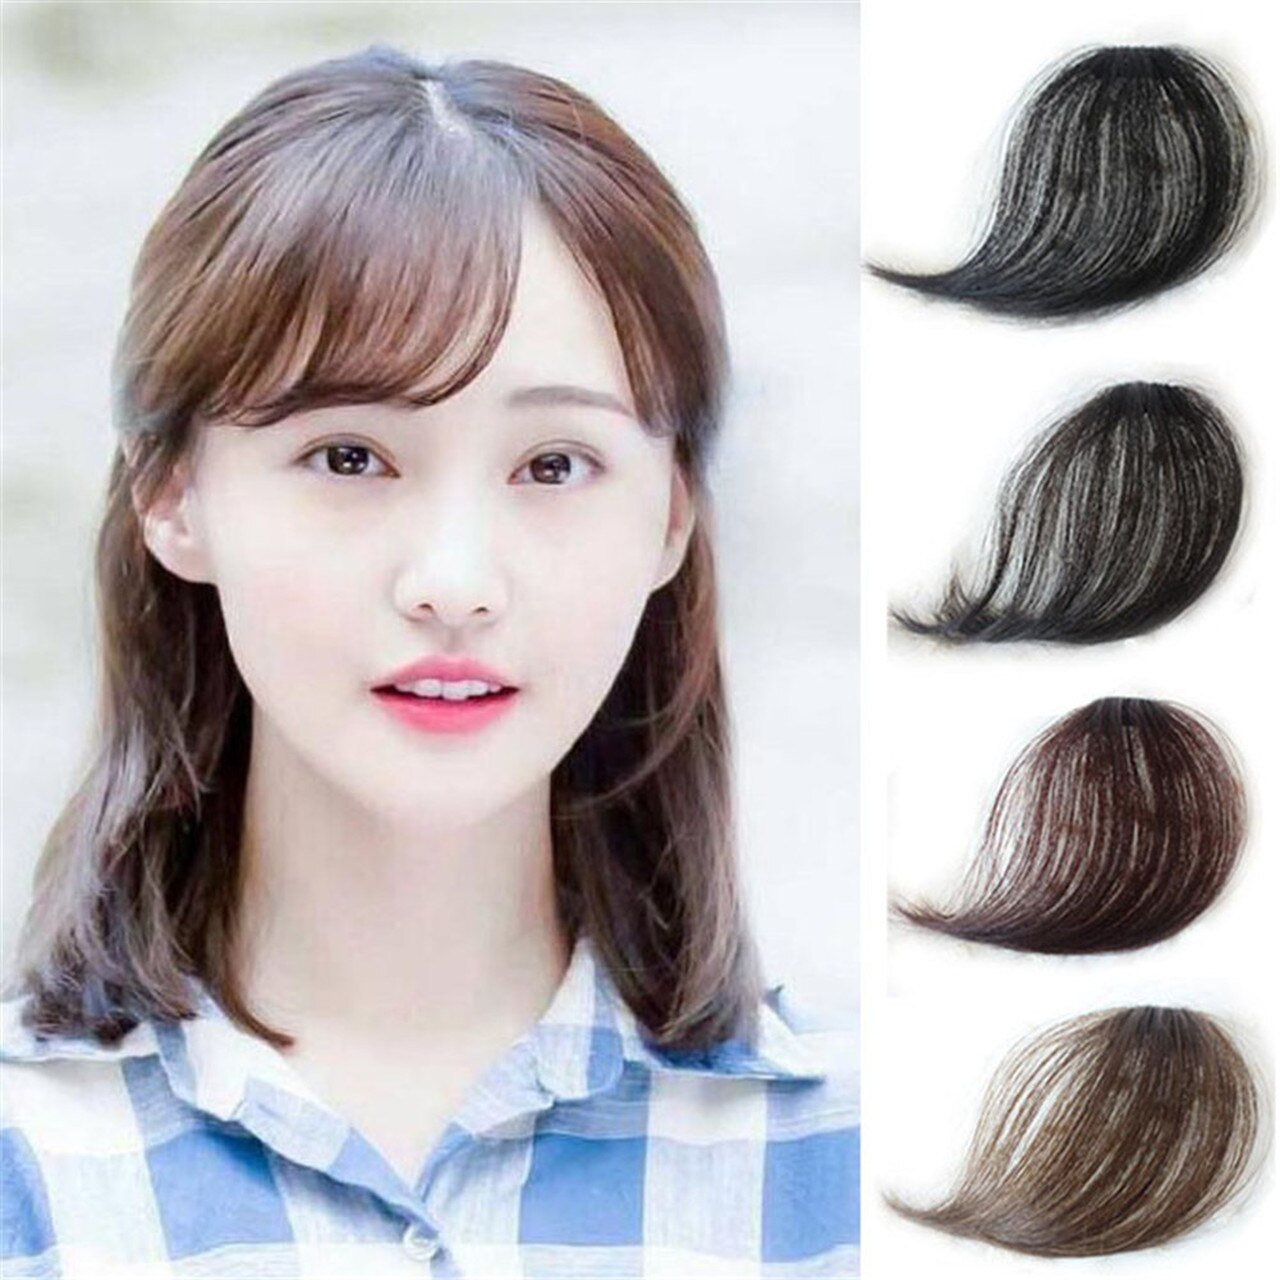 Thin Slant Air Bangs Hand Made Human Hair Extensions Clip In Hair Straight Bangs